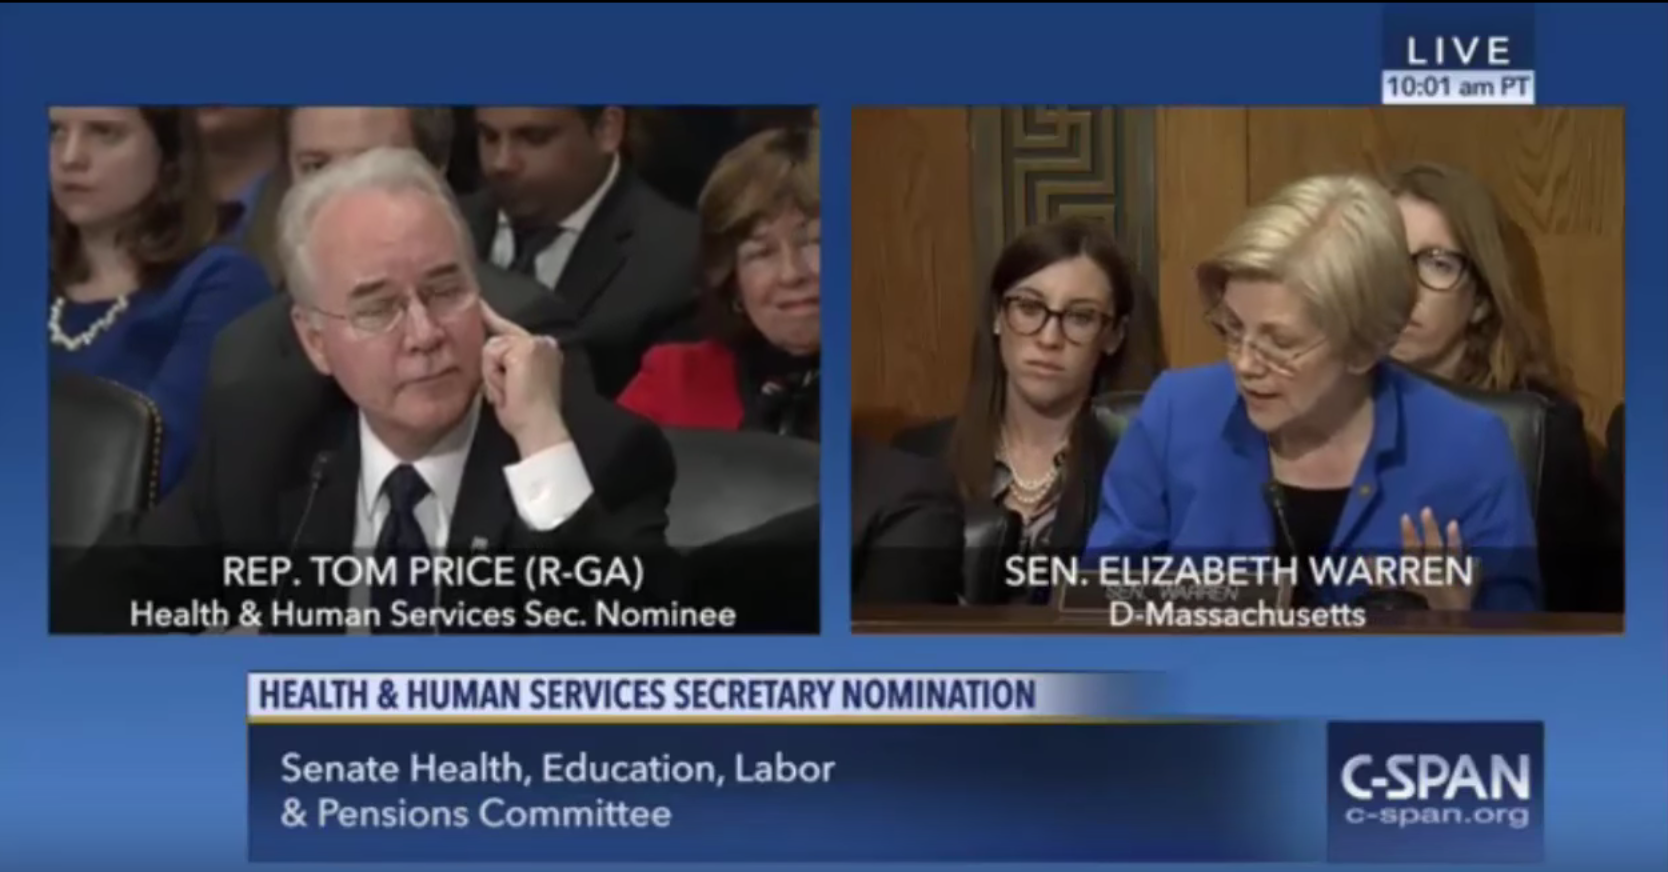 WATCH: Elizabeth Warren Lambasts Trump's HHS Pick Tom Price on Insider Trading Scandal in Senate Hearing